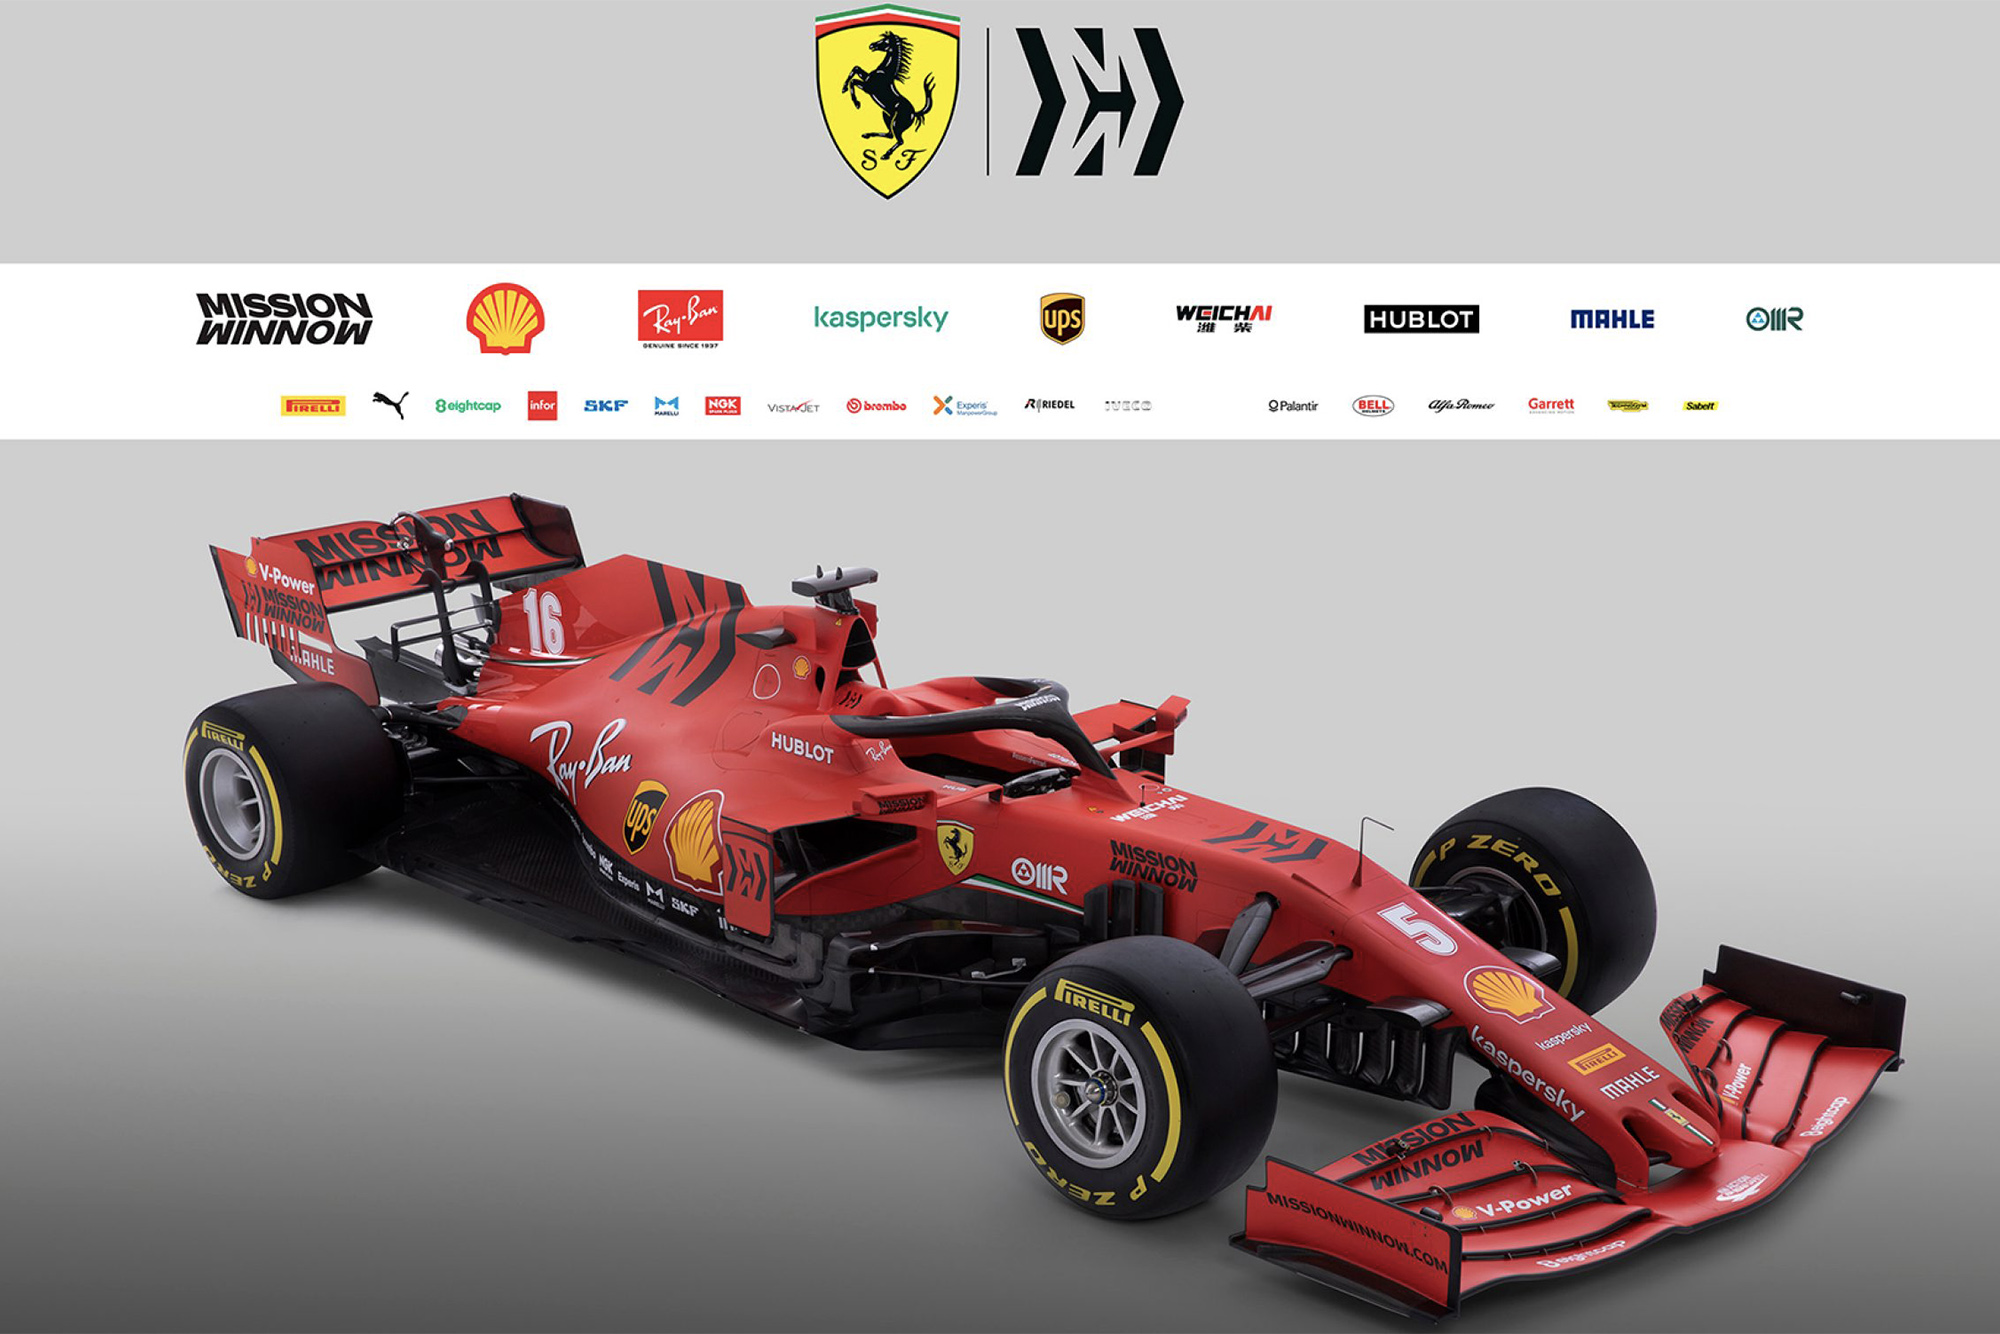 Ferrari launches 2020 car SF1000